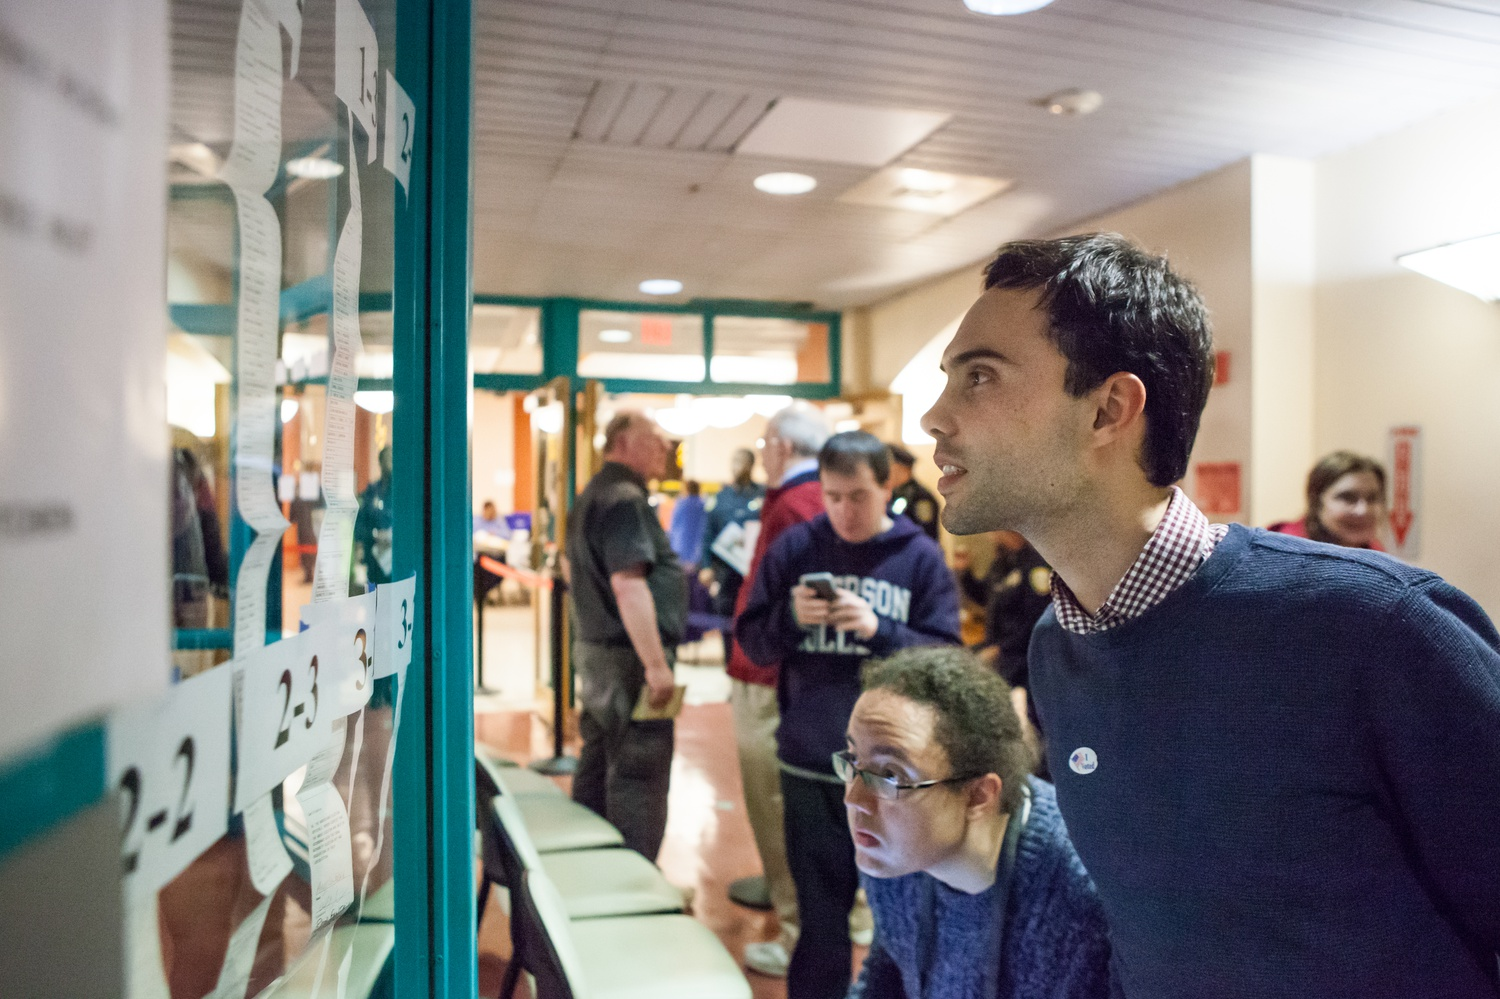 Patrick C. Braga, a student at the Graduate School of Design, checks the results for each precinct. As precincts reported to the Election Commission, the top candidates were posted in the hallway of the Cambridge Citywide Senior Center.